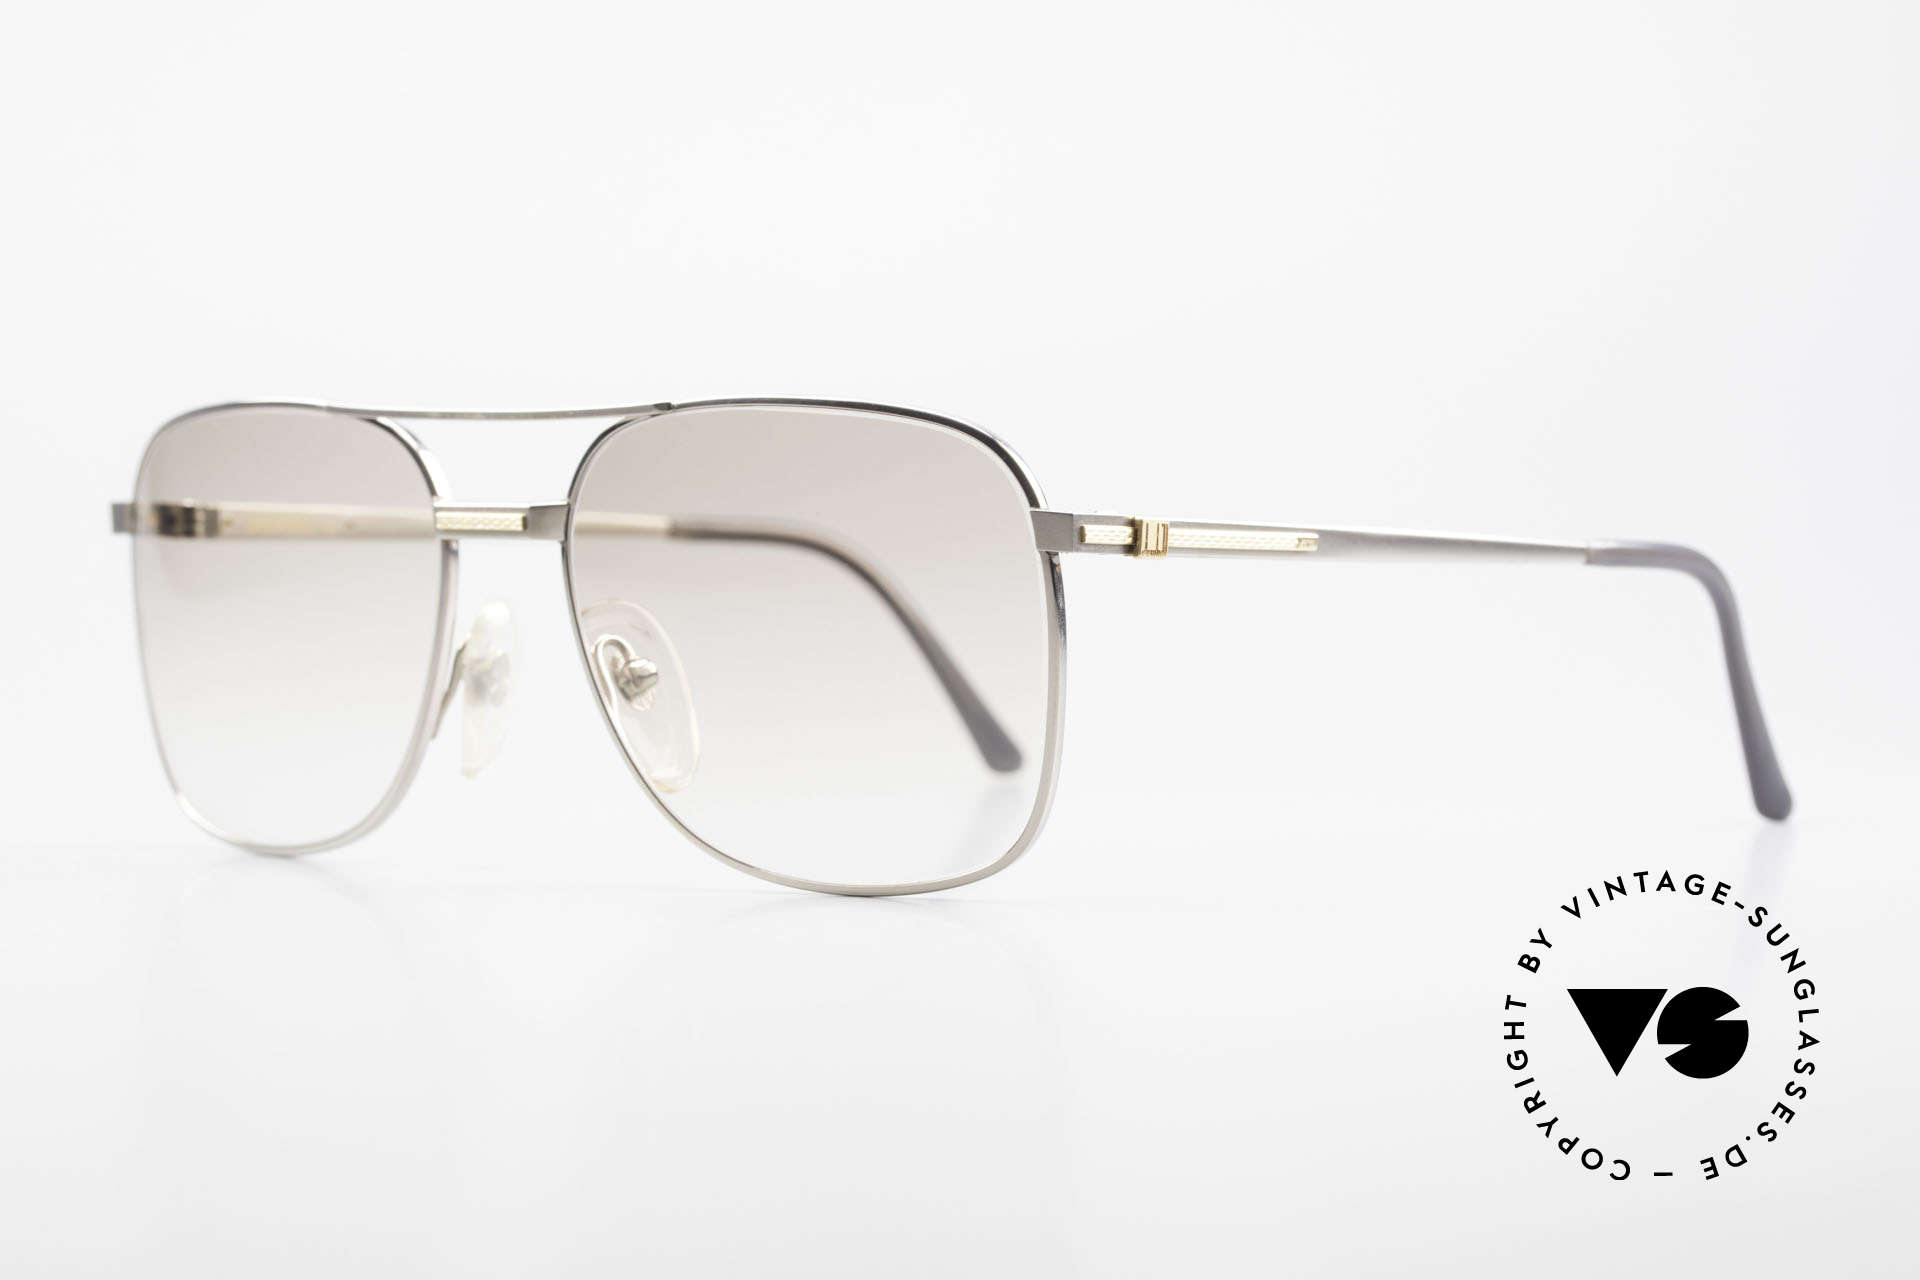 Dunhill 6066 18kt Gold Titanium Glasses, manufacturing costs in 1988 = 120,- DM (app. 75 USD), Made for Men